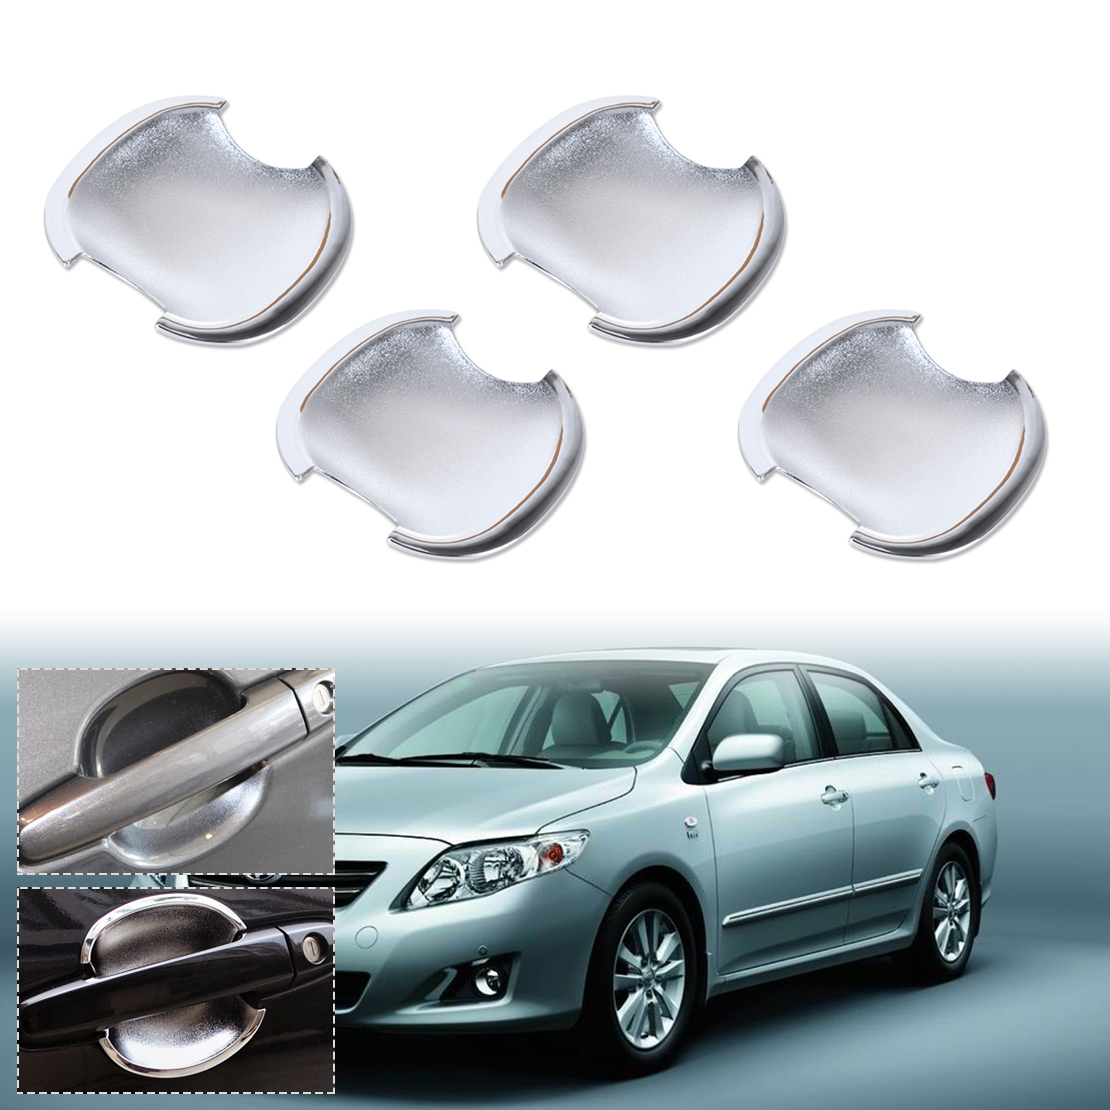 For Toyota Camry 2007 2008 2009 2010 2011 Chrome Door Handle Cup Bowl Cover Trim